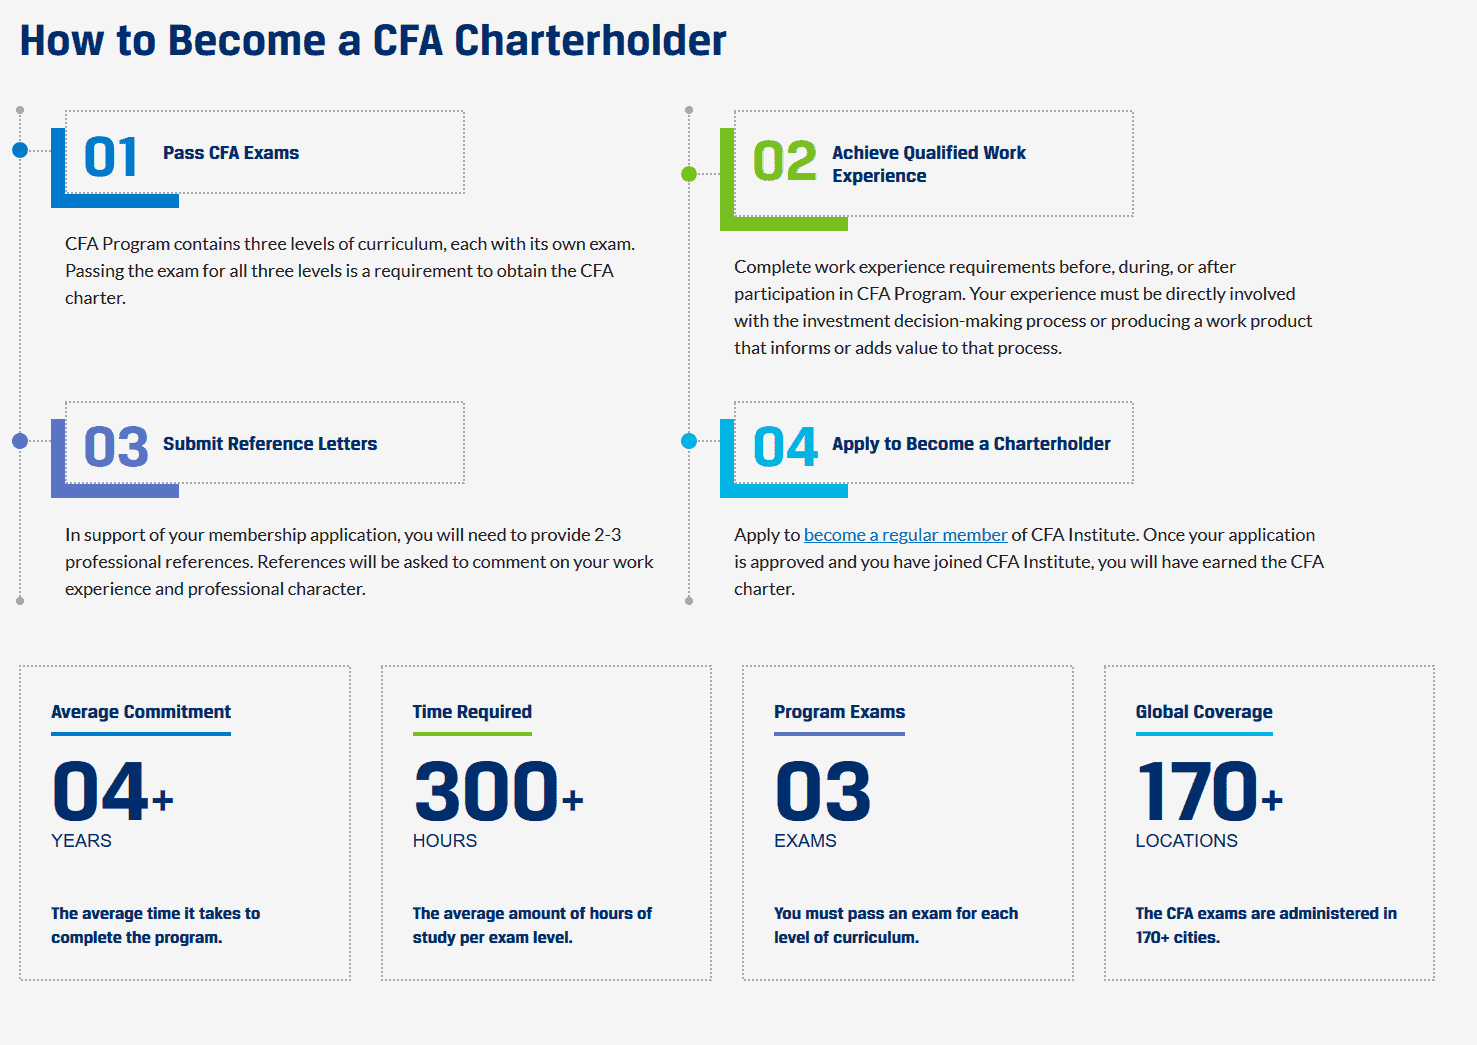 CFA program - how to get CFA chartholder